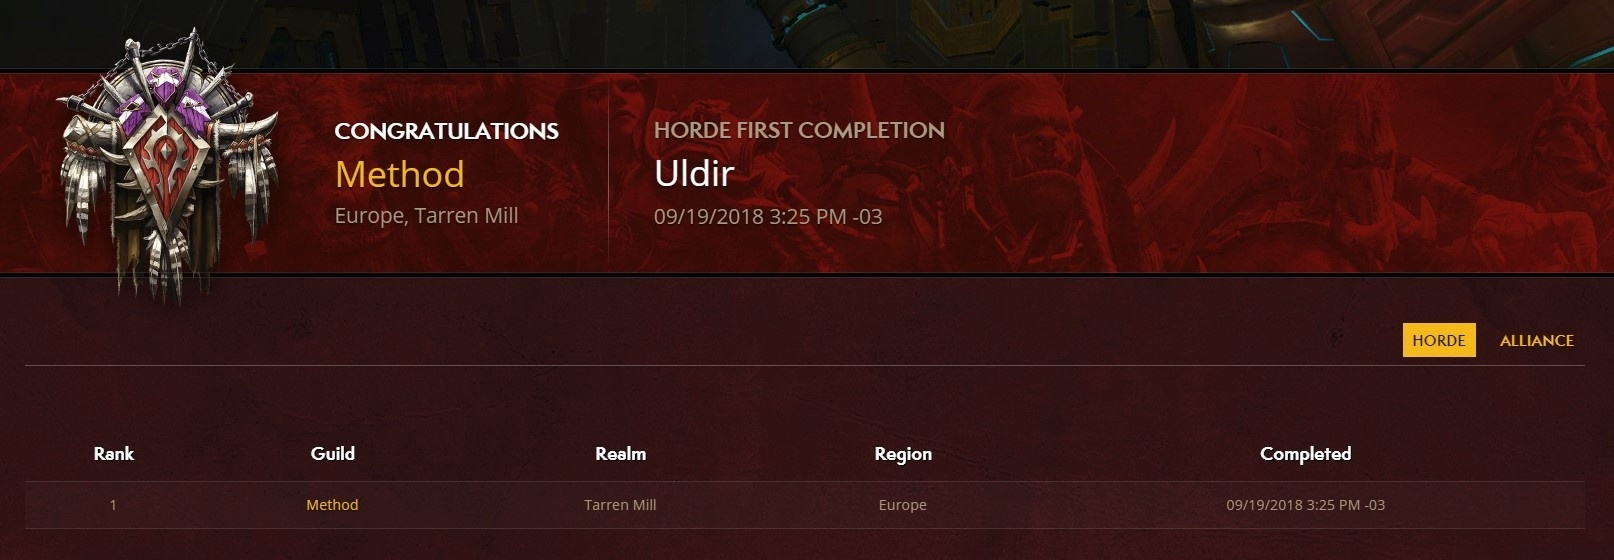 Battle for Azeroth Mythic Uldir Leaderboards Now Live